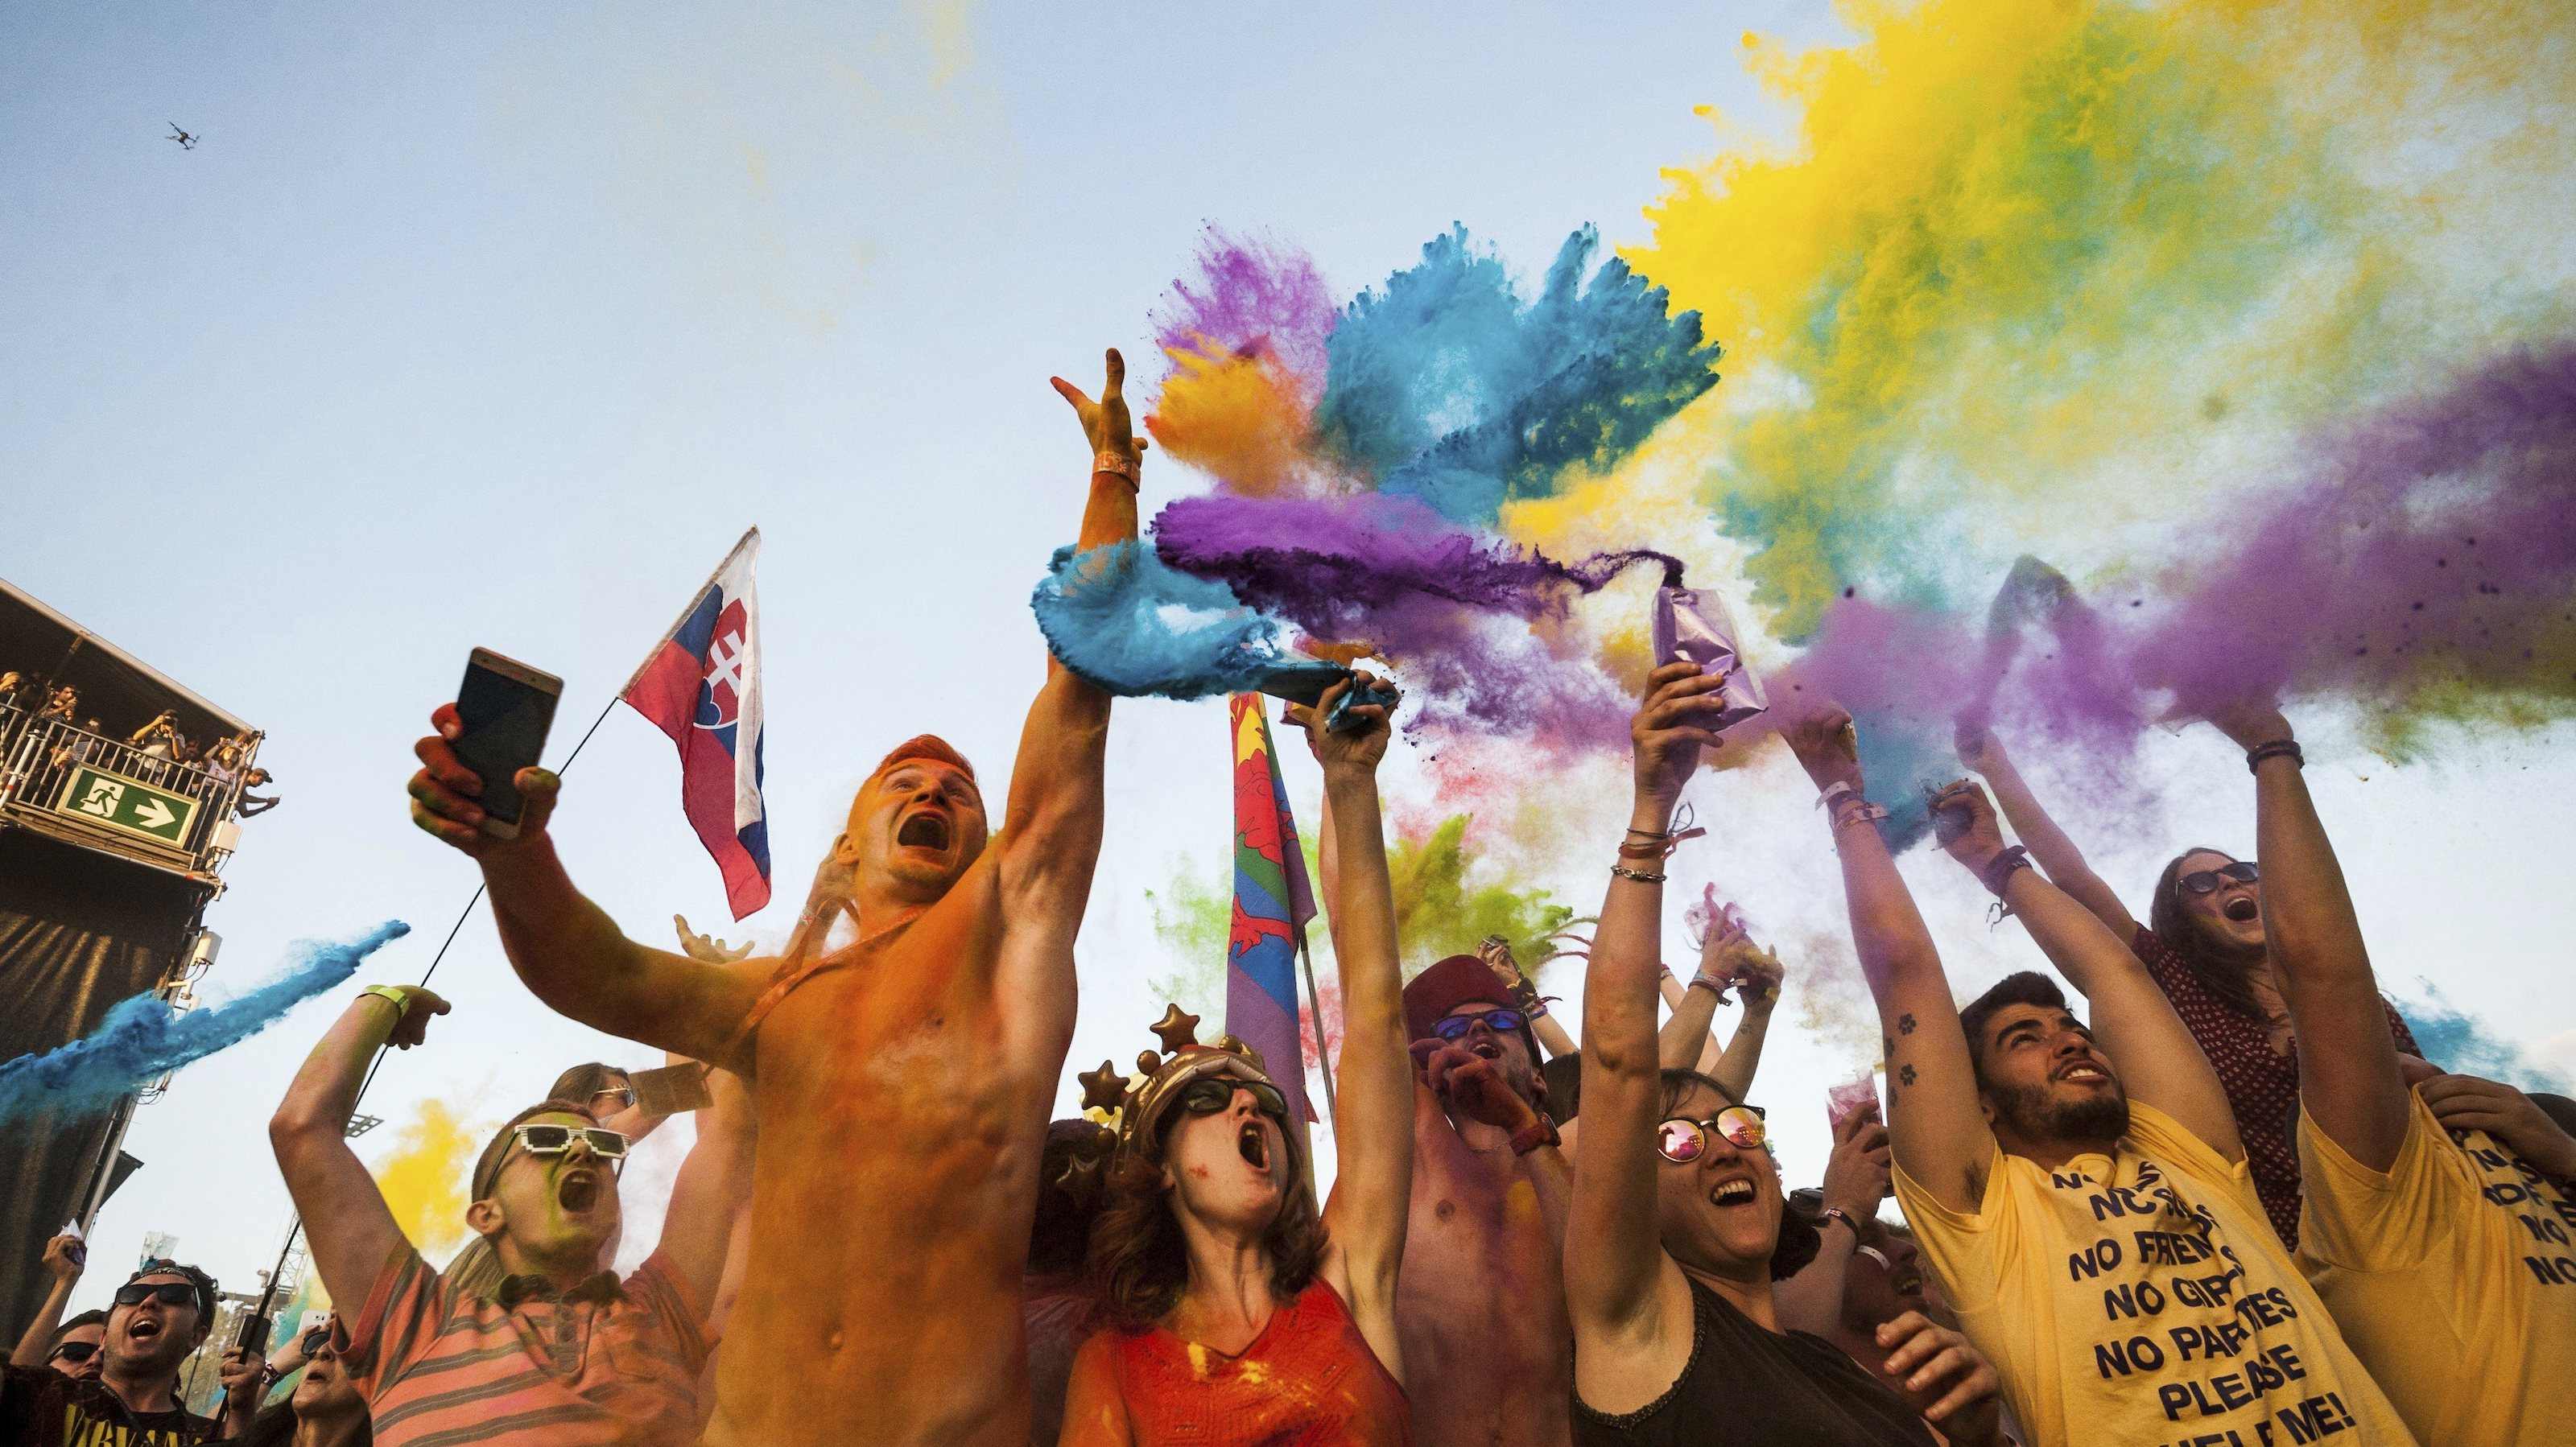 Festival goers participate in a color party at the 25th Sziget (Island) Festival on Shipyard Island, Northern Budapest, Hungary, Tuesday, Aug. 15, 2017. The festival is one of the biggest cultural events of Europe offering art exhibitions, theatrical and circus performances and above all music concerts in eight days. More than 100 programs a day and performers from over 52 countries entertain the nearly 500 thousands visitors. (Marton Monus/MTI via AP)